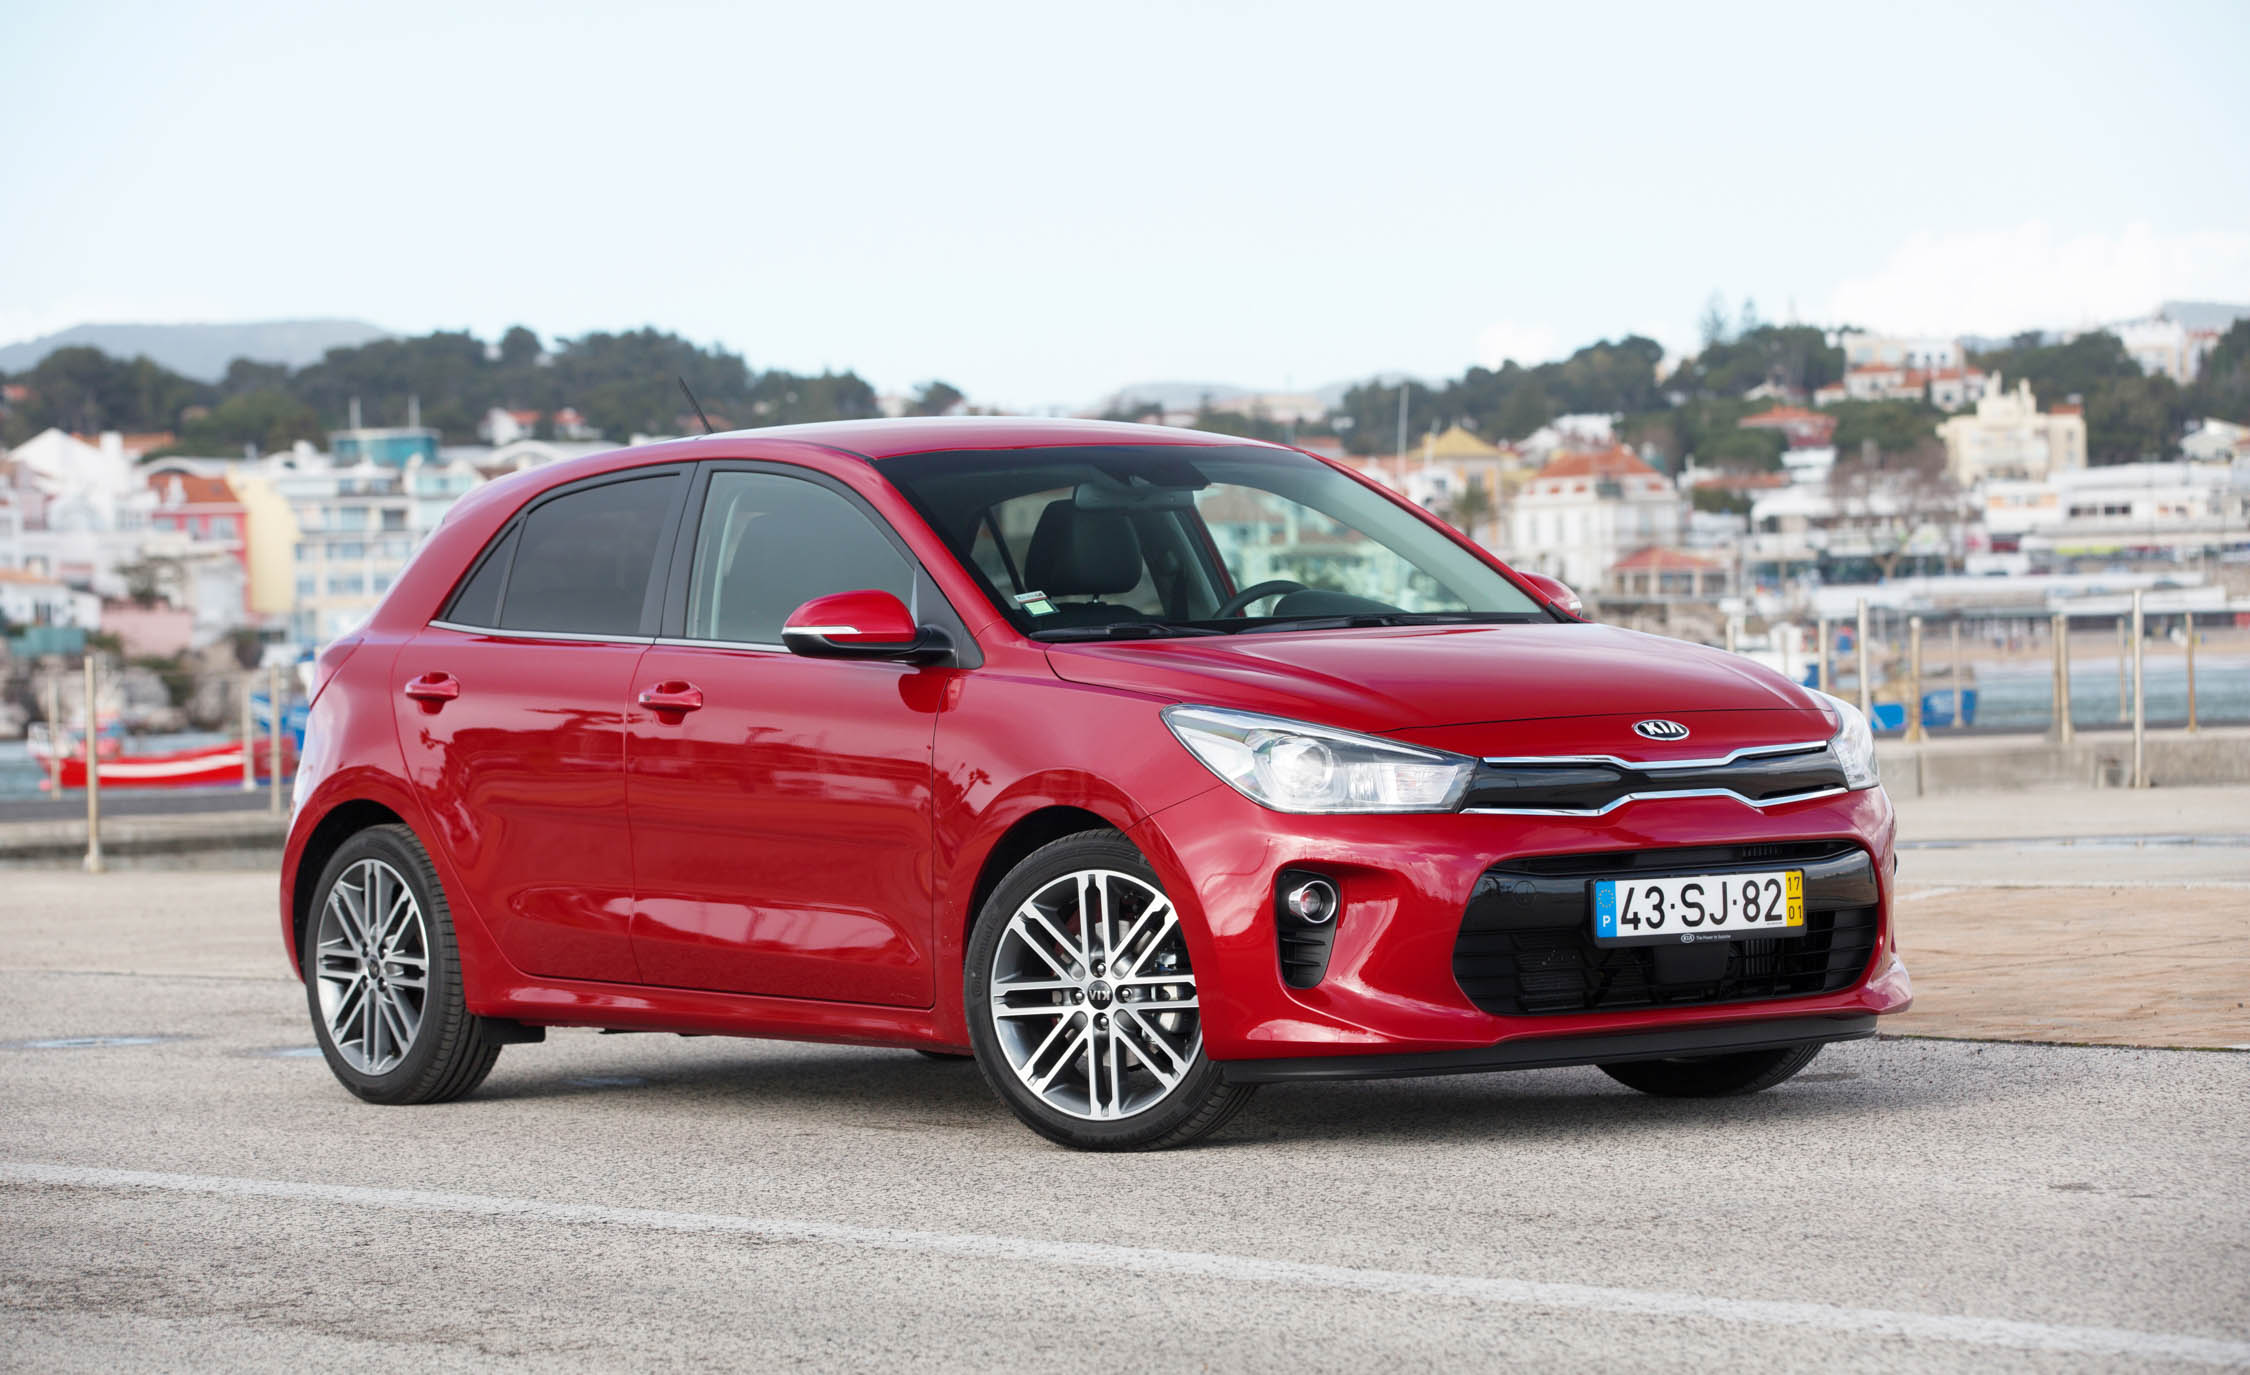 2018 Kia Rio Hatchback Red (View 6 of 49)